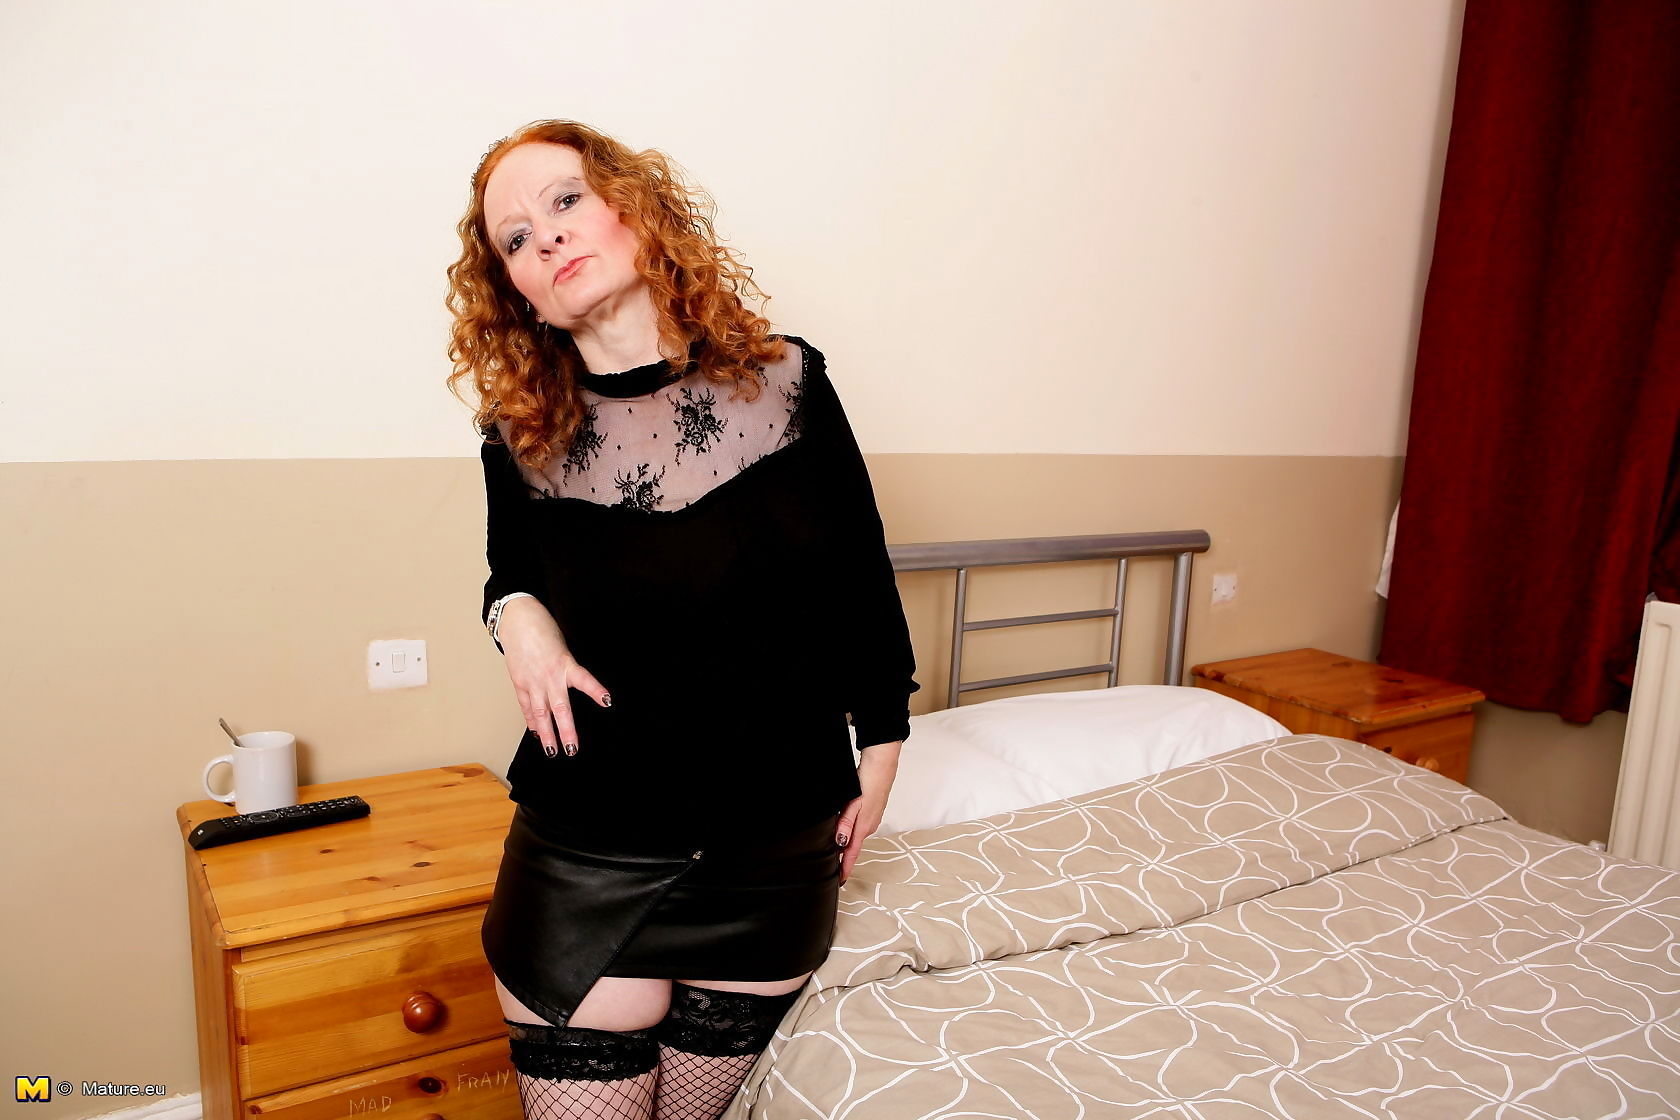 Naughty red mature lady from the uk having a ball - part 3512